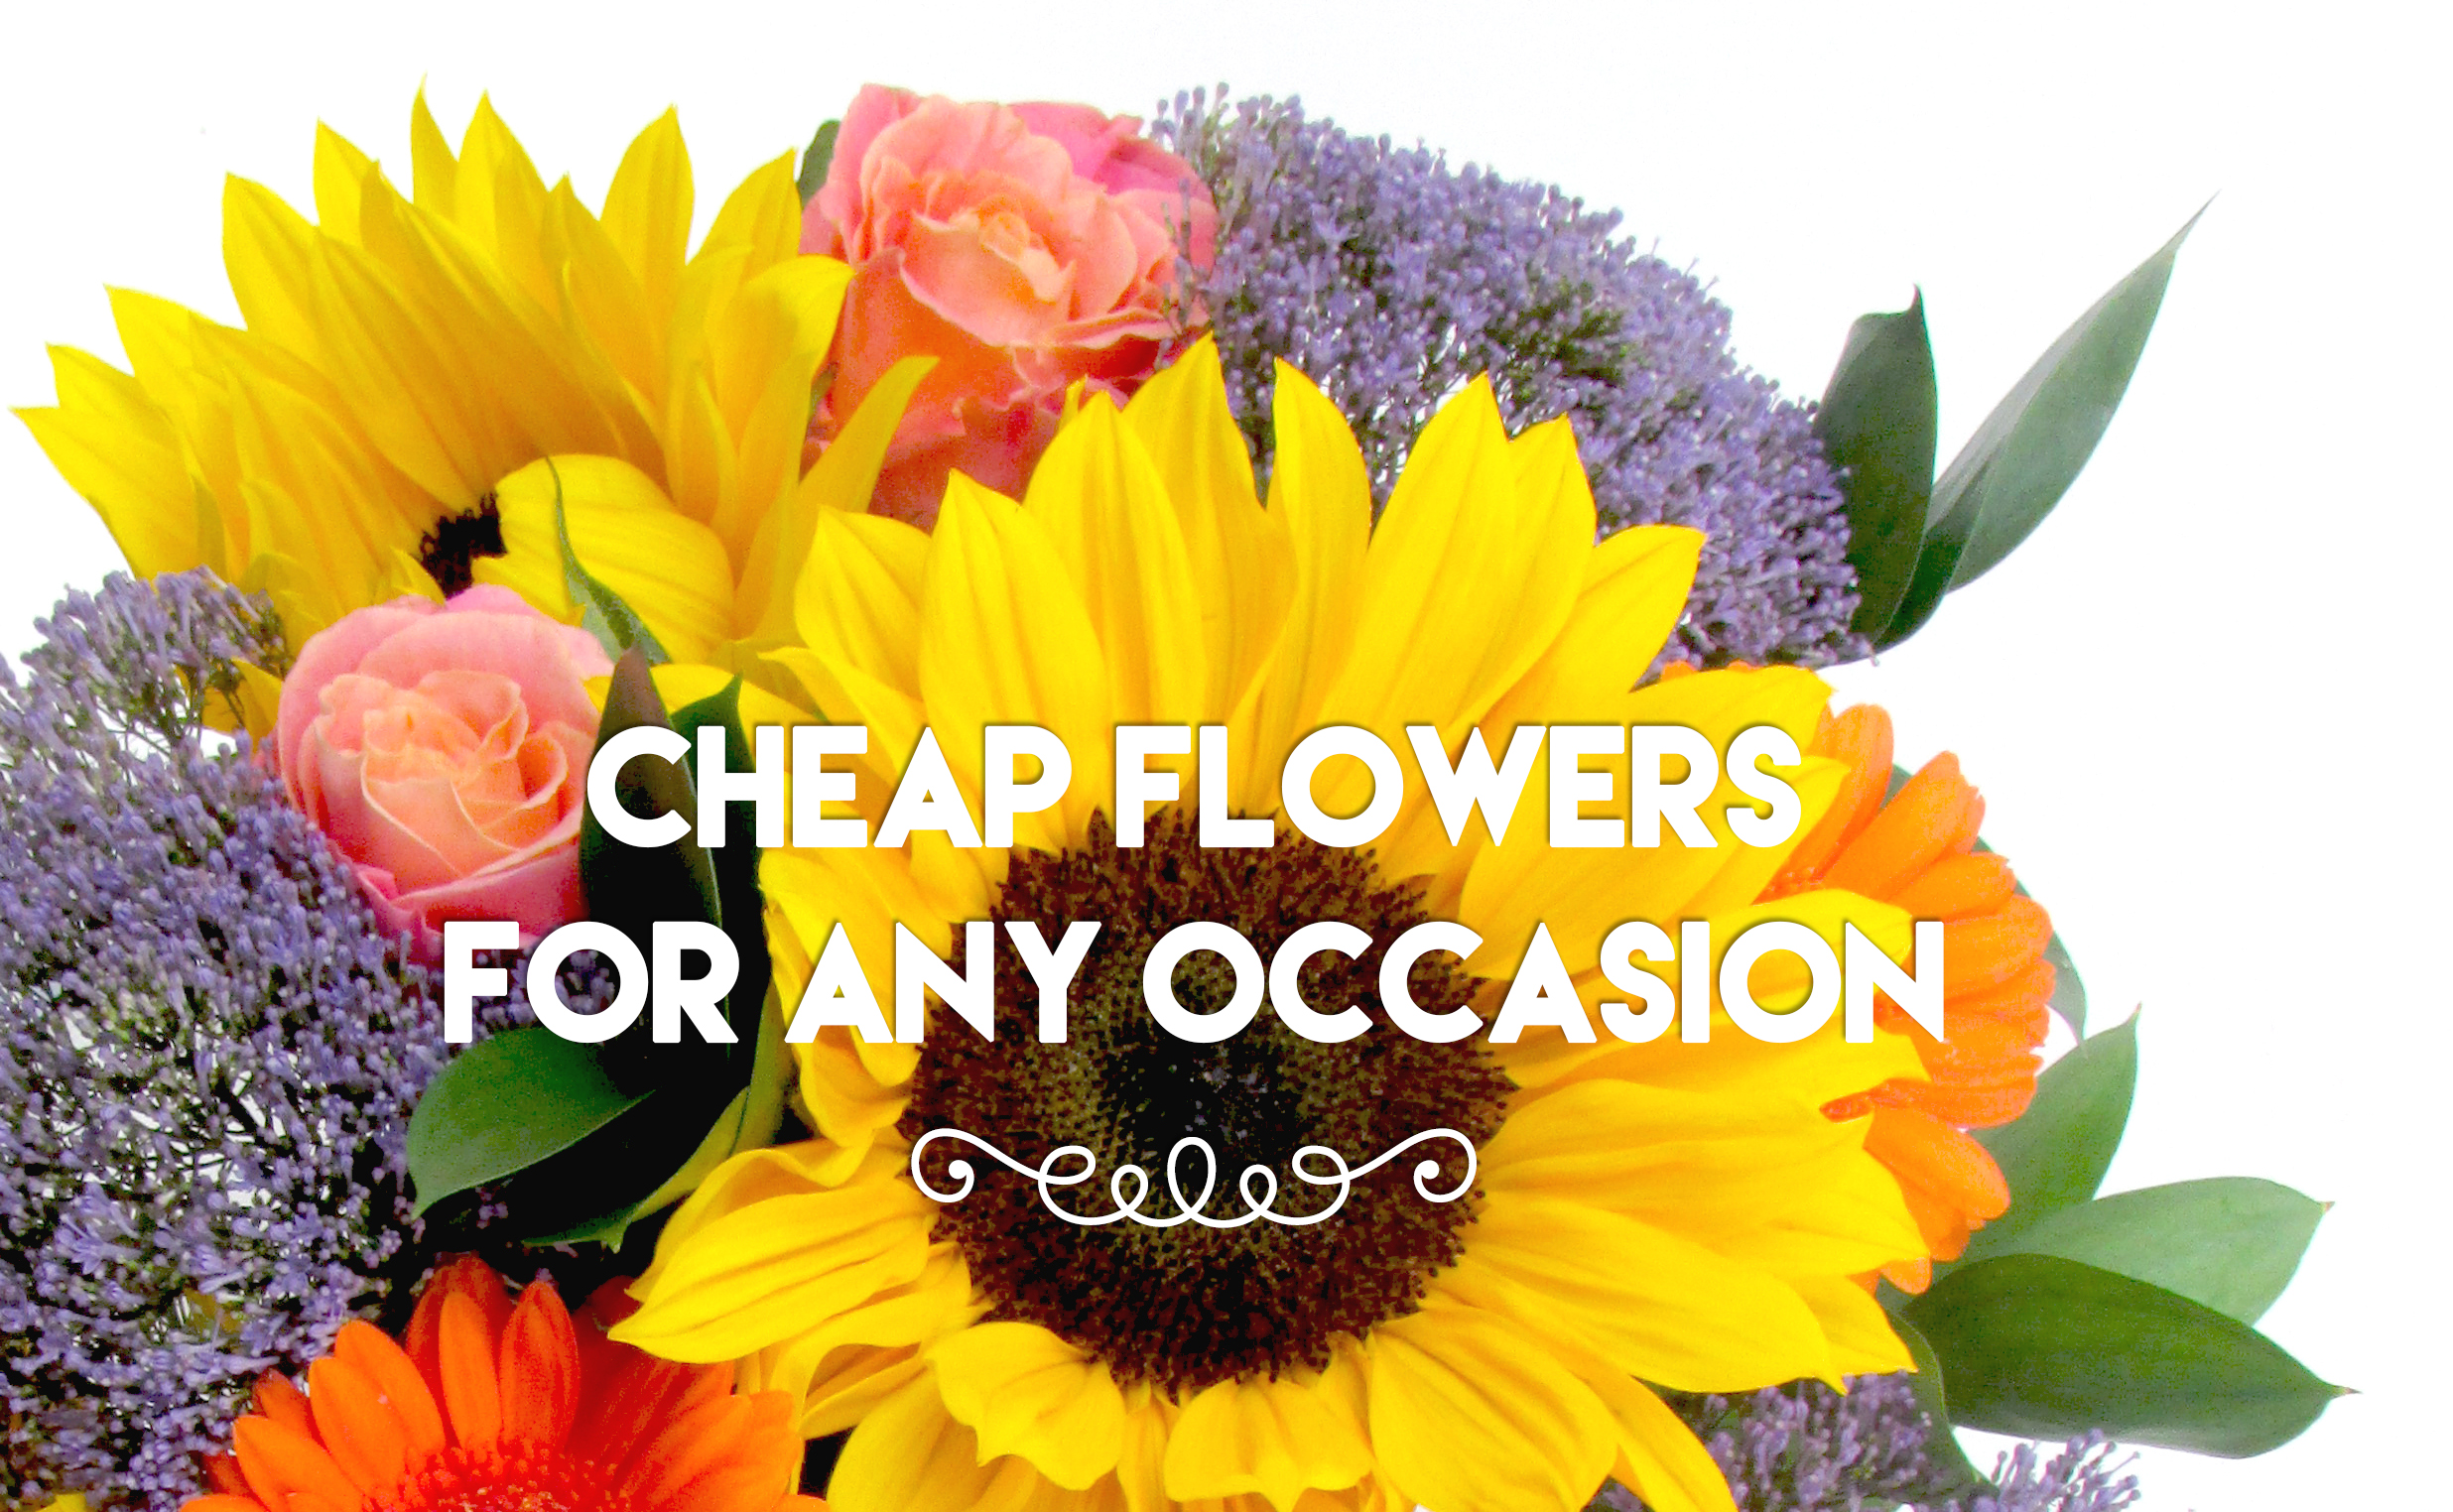 Cheap Flowers For Any Occasion